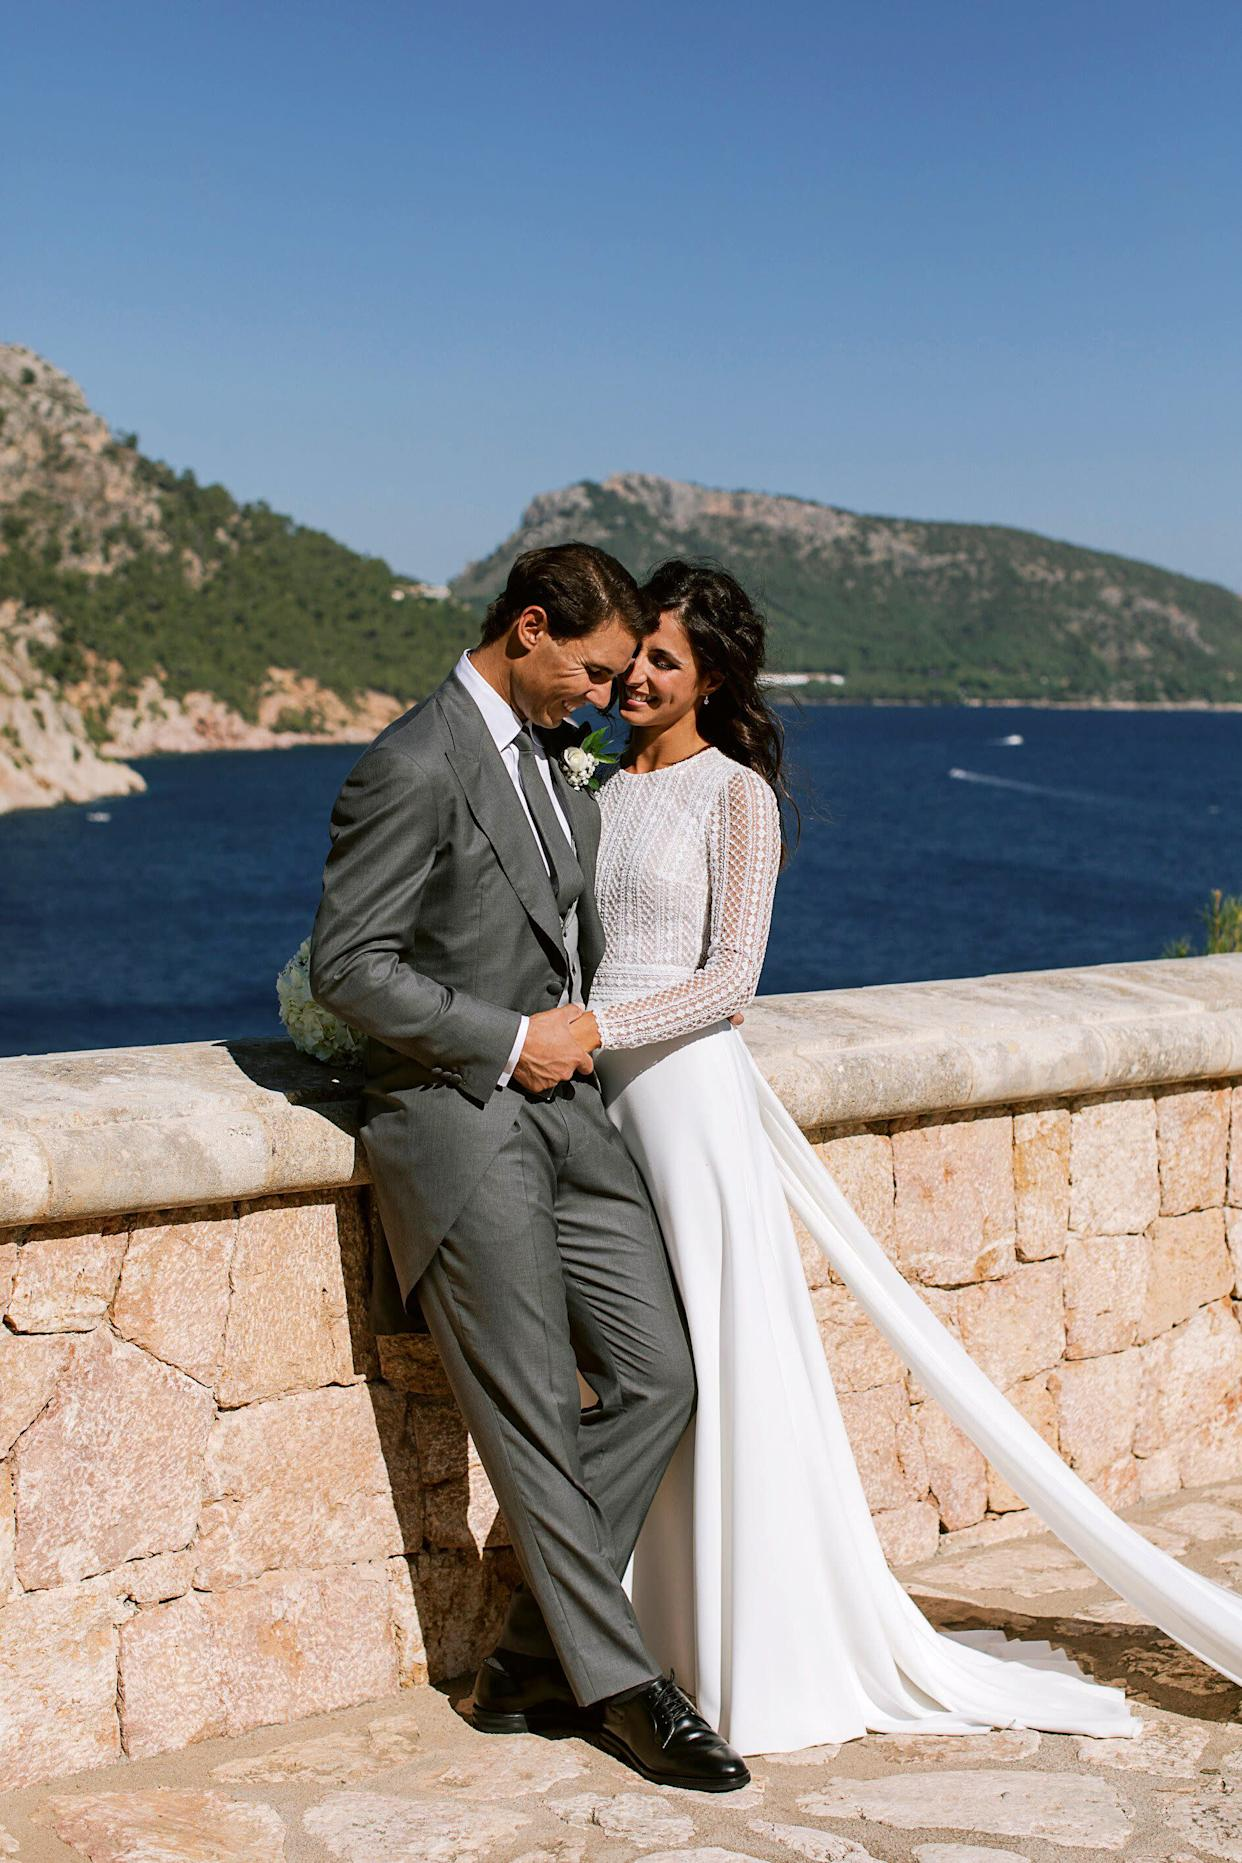 In this handout photo provided by the Fundacion Rafa Nadal, Nadal poses with wife Xisca Perello for the official wedding portraits after they were married on Oct. 19 in Mallorca, Spain. (Photo: Handout via Getty Images)